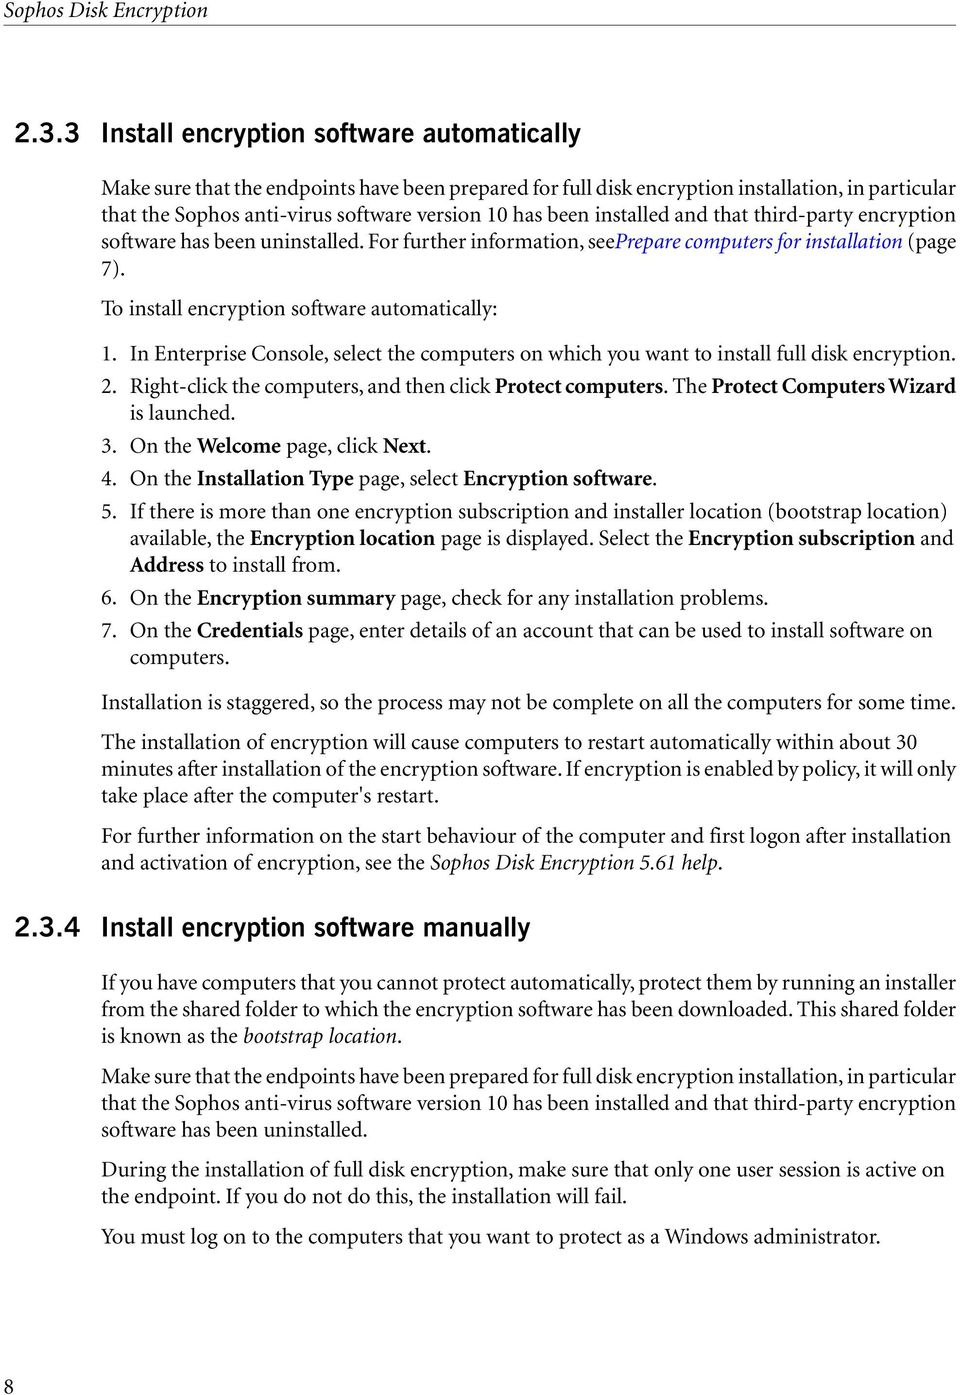 been installed and that third-party encryption software has been uninstalled. For further information, seeprepare computers for installation (page 7). To install encryption software automatically: 1.